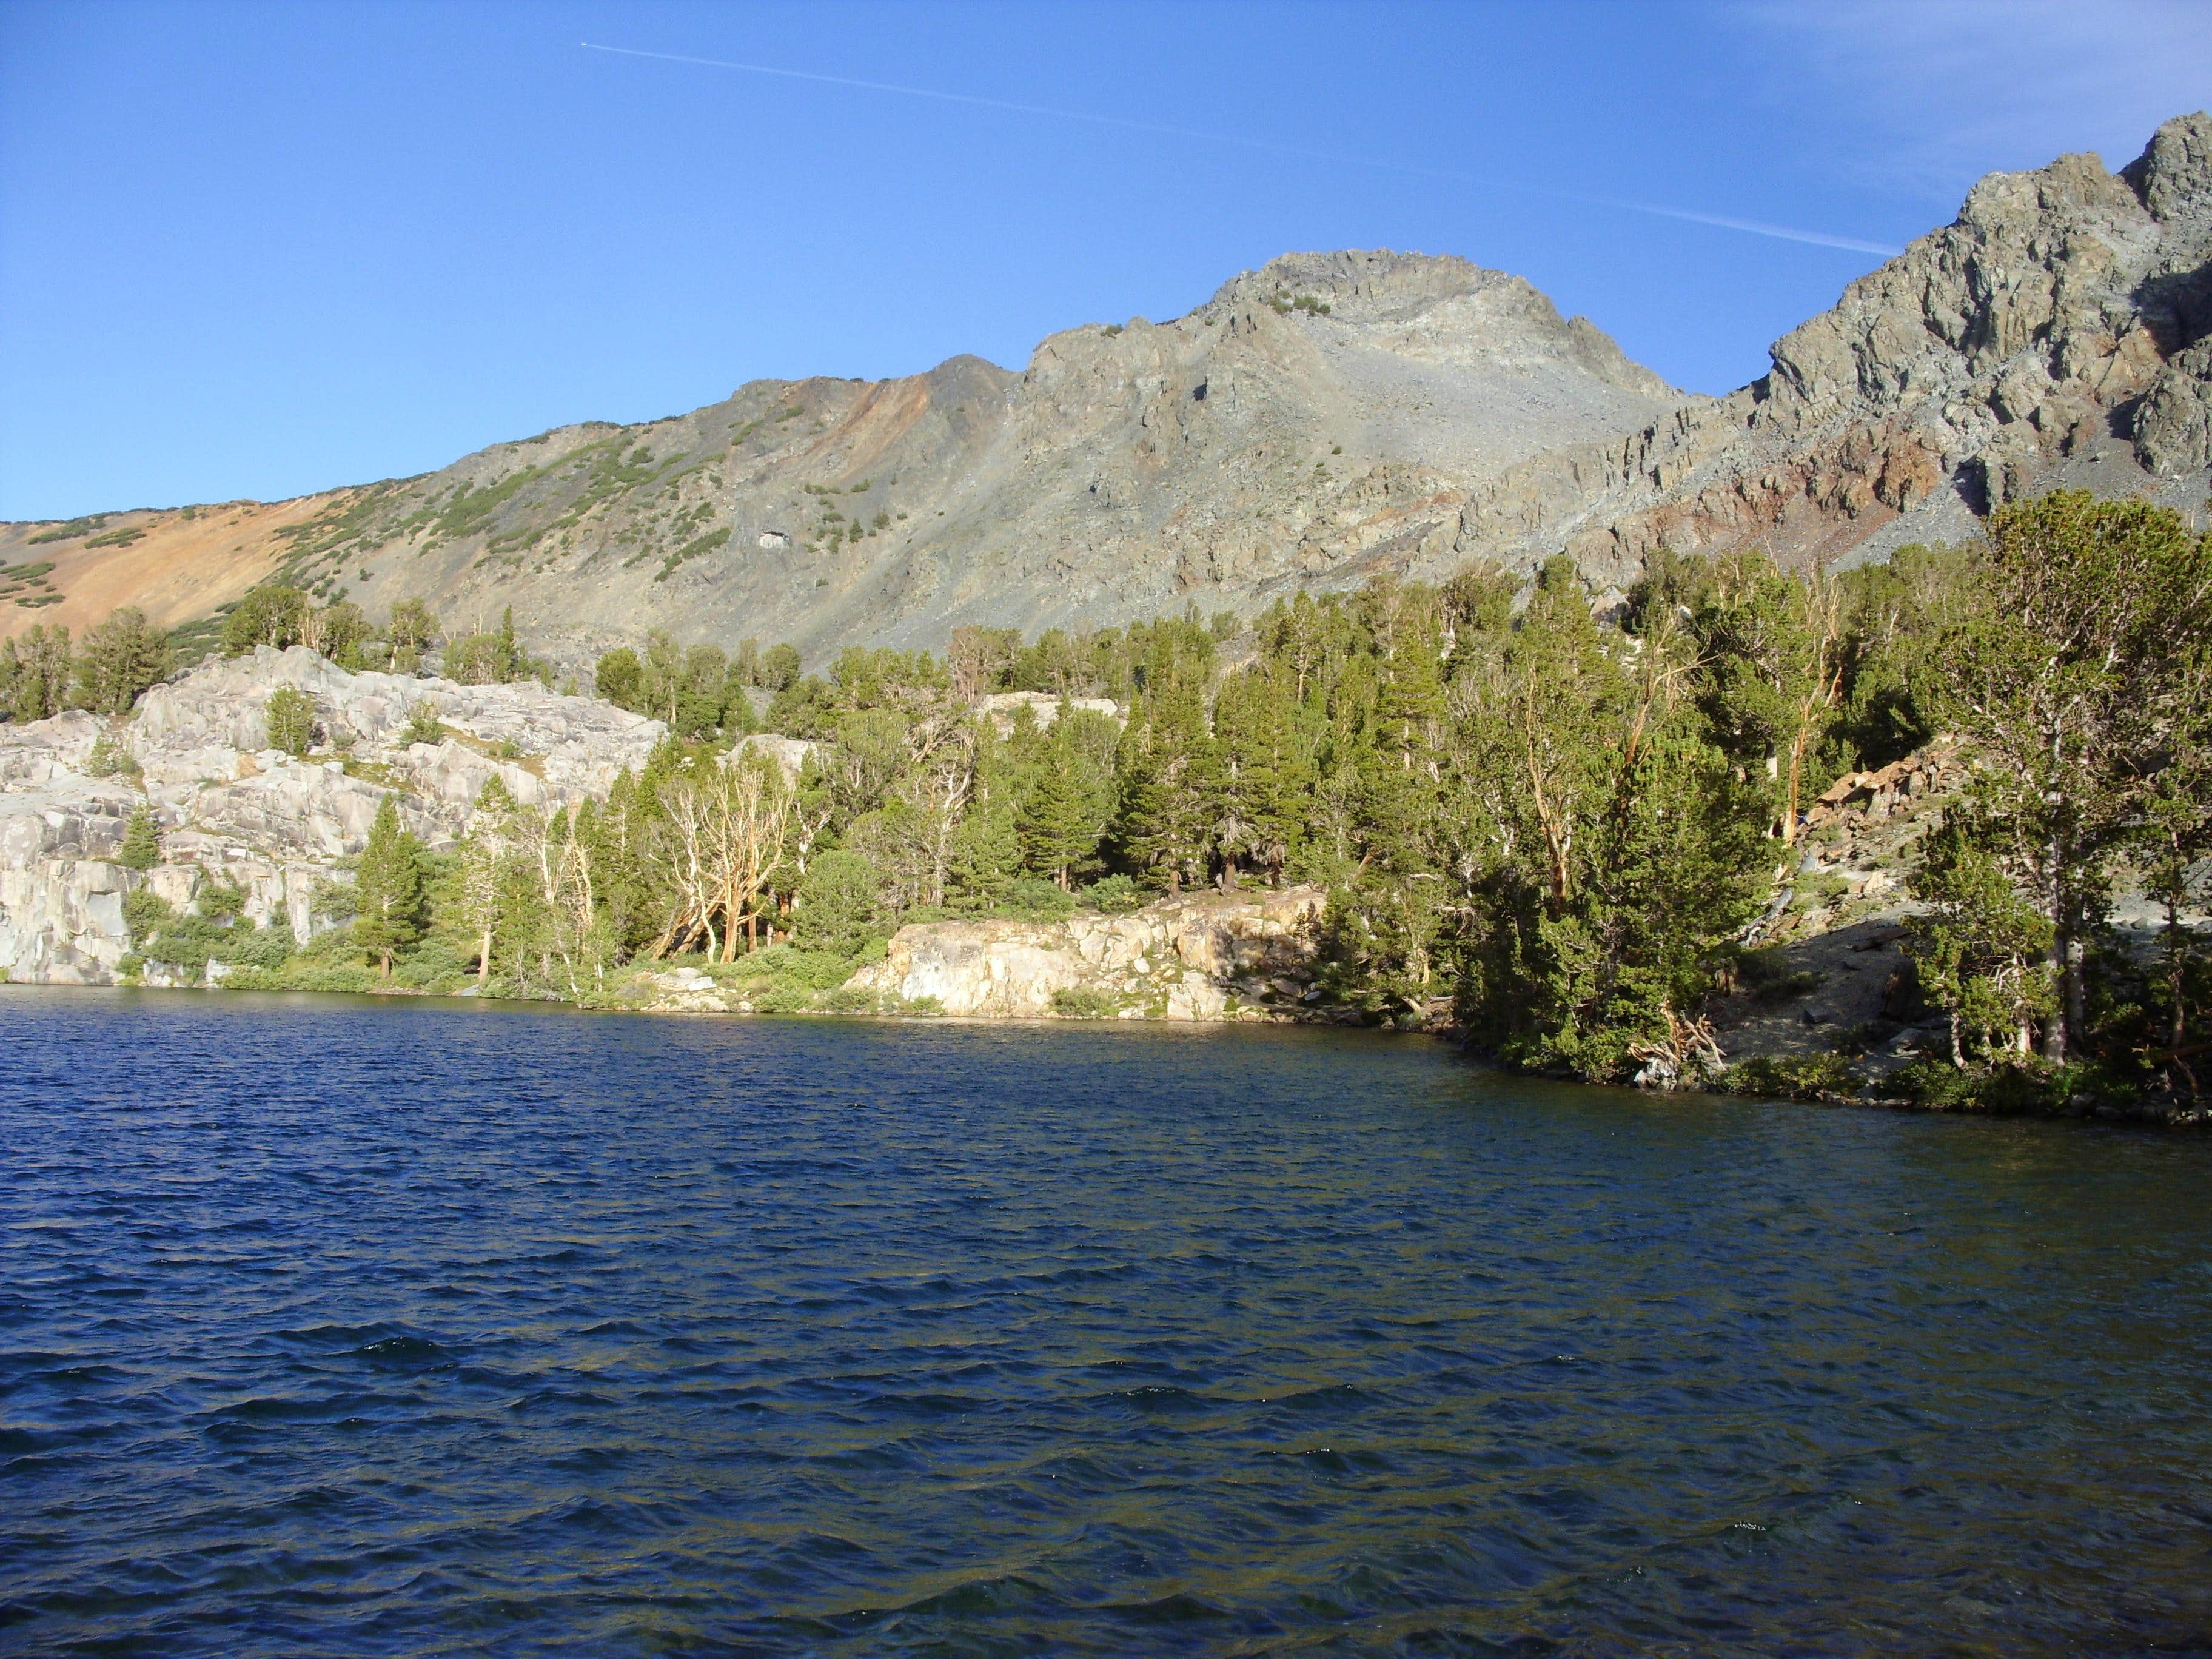 Peak 11,568 – Hoover Wilderness